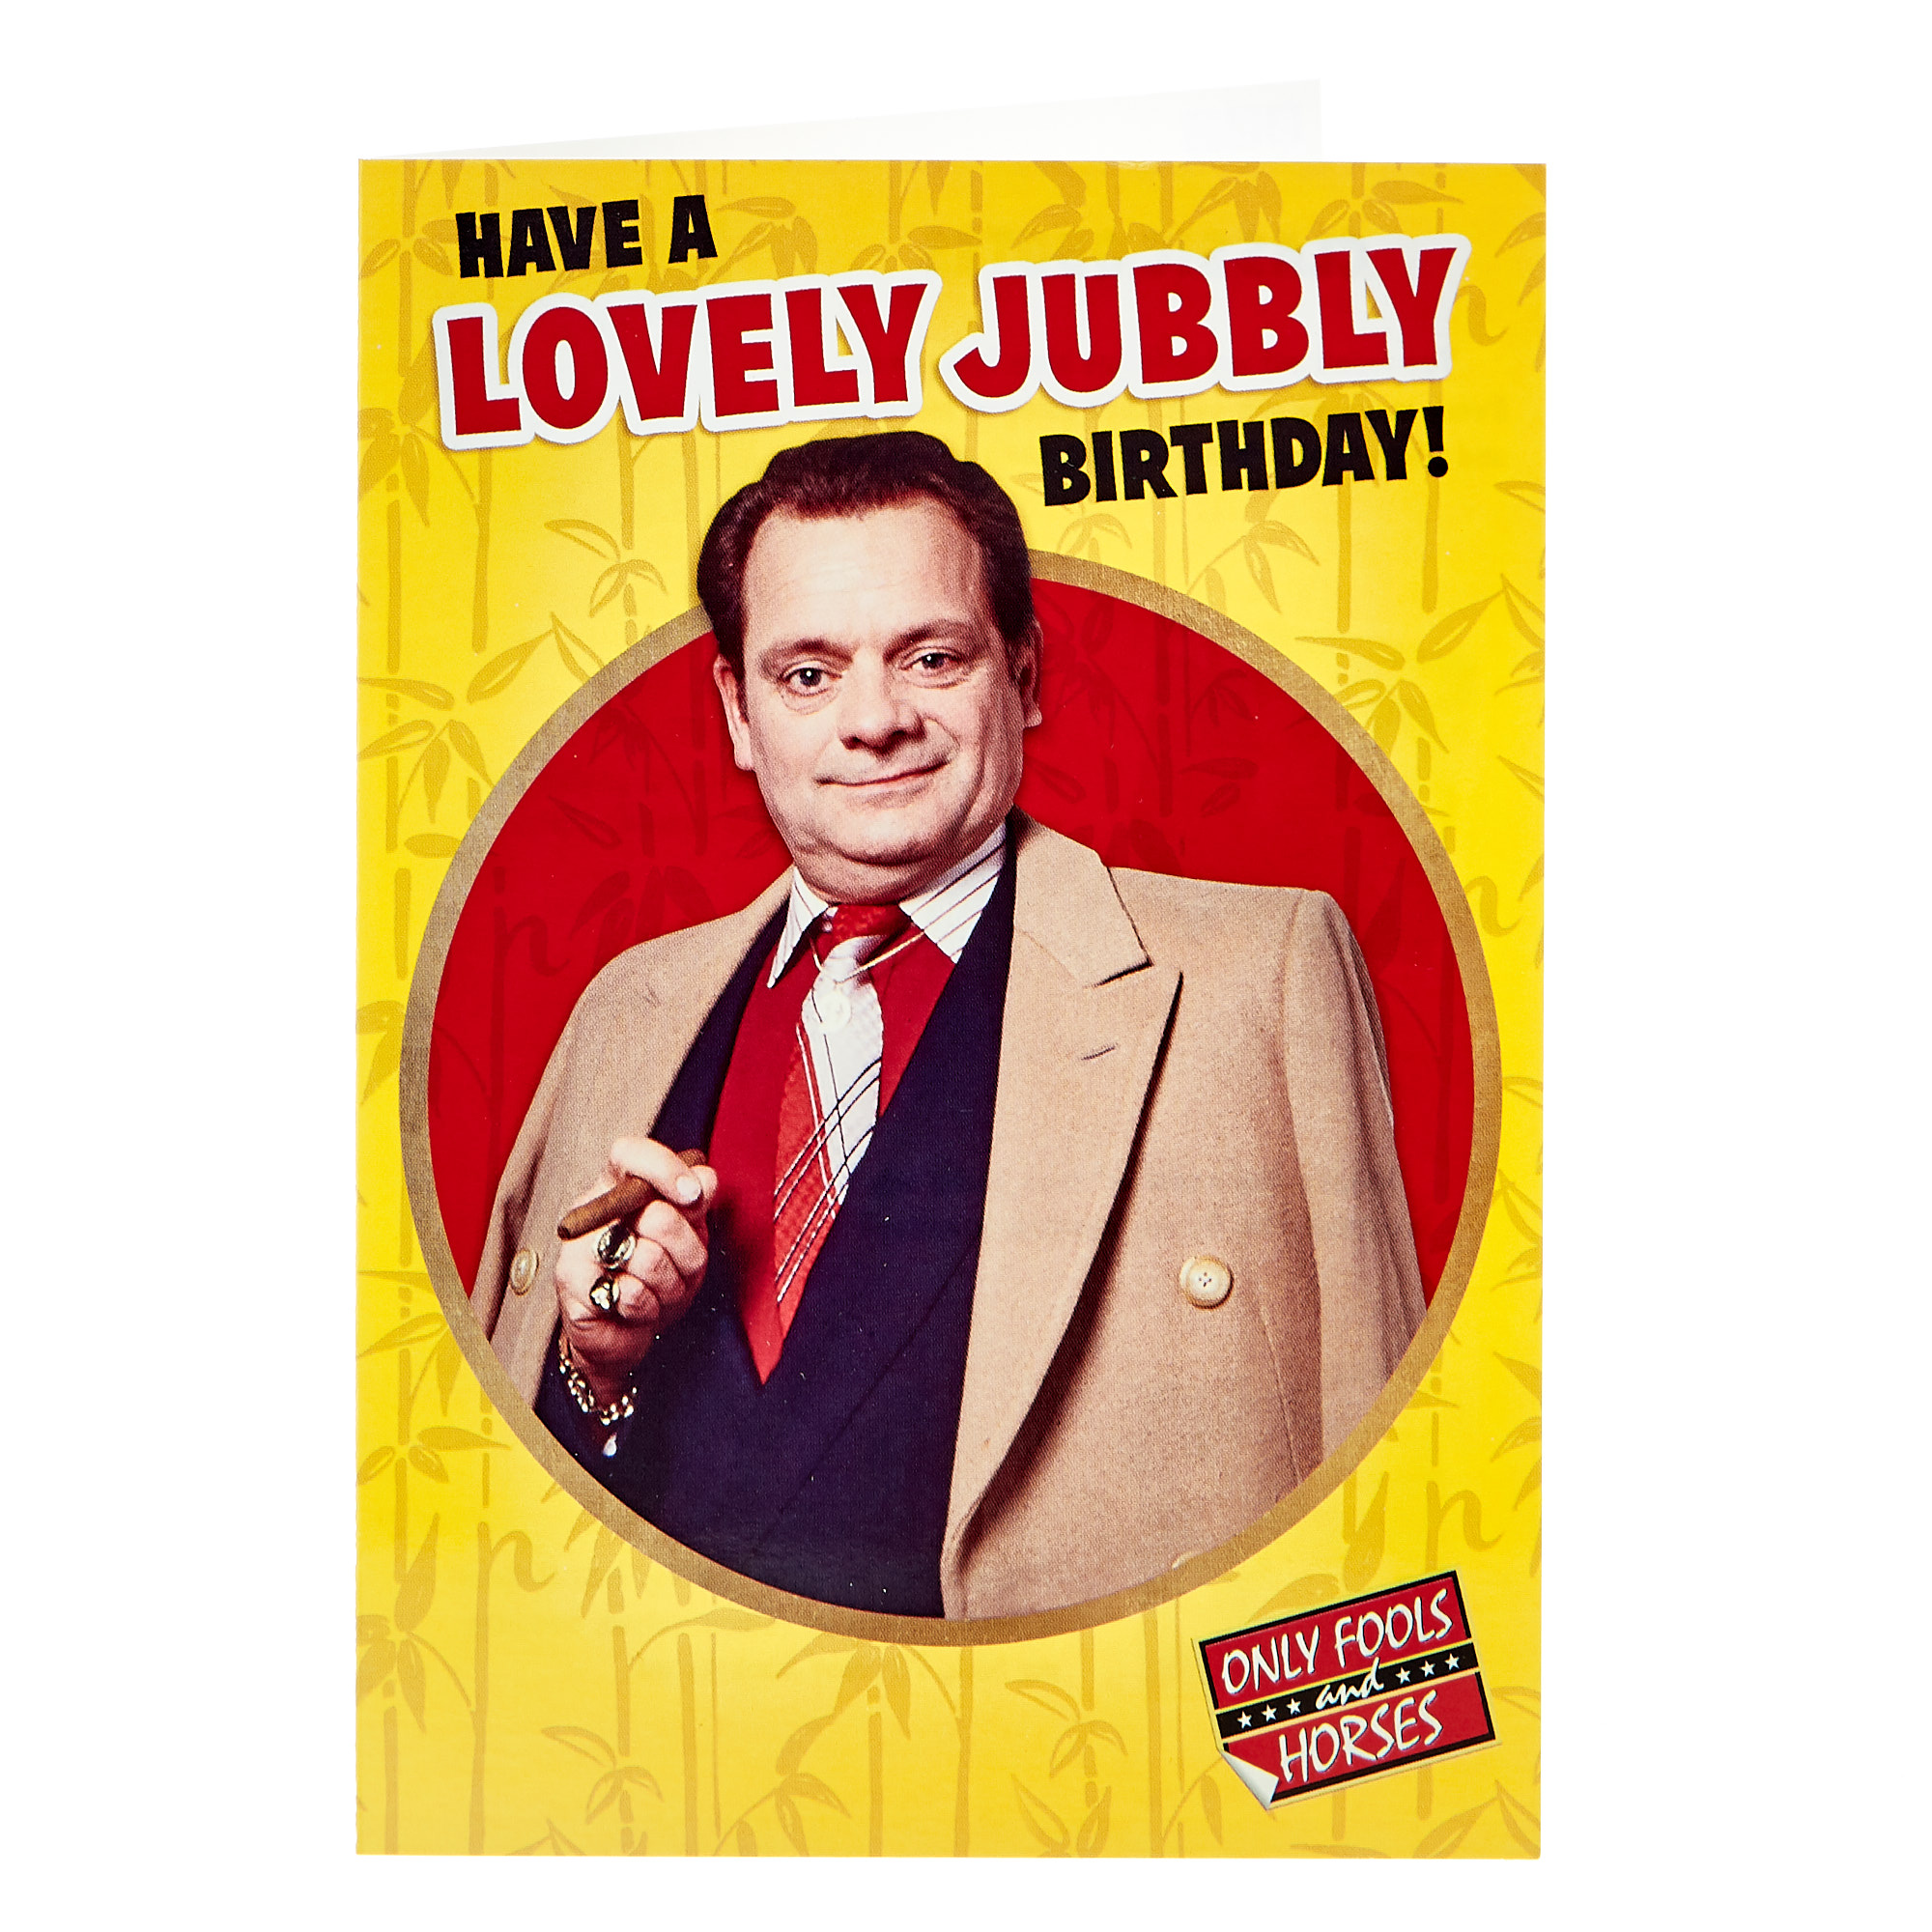 Only Fools & Horses Birthday Card - Lovely Jubbly